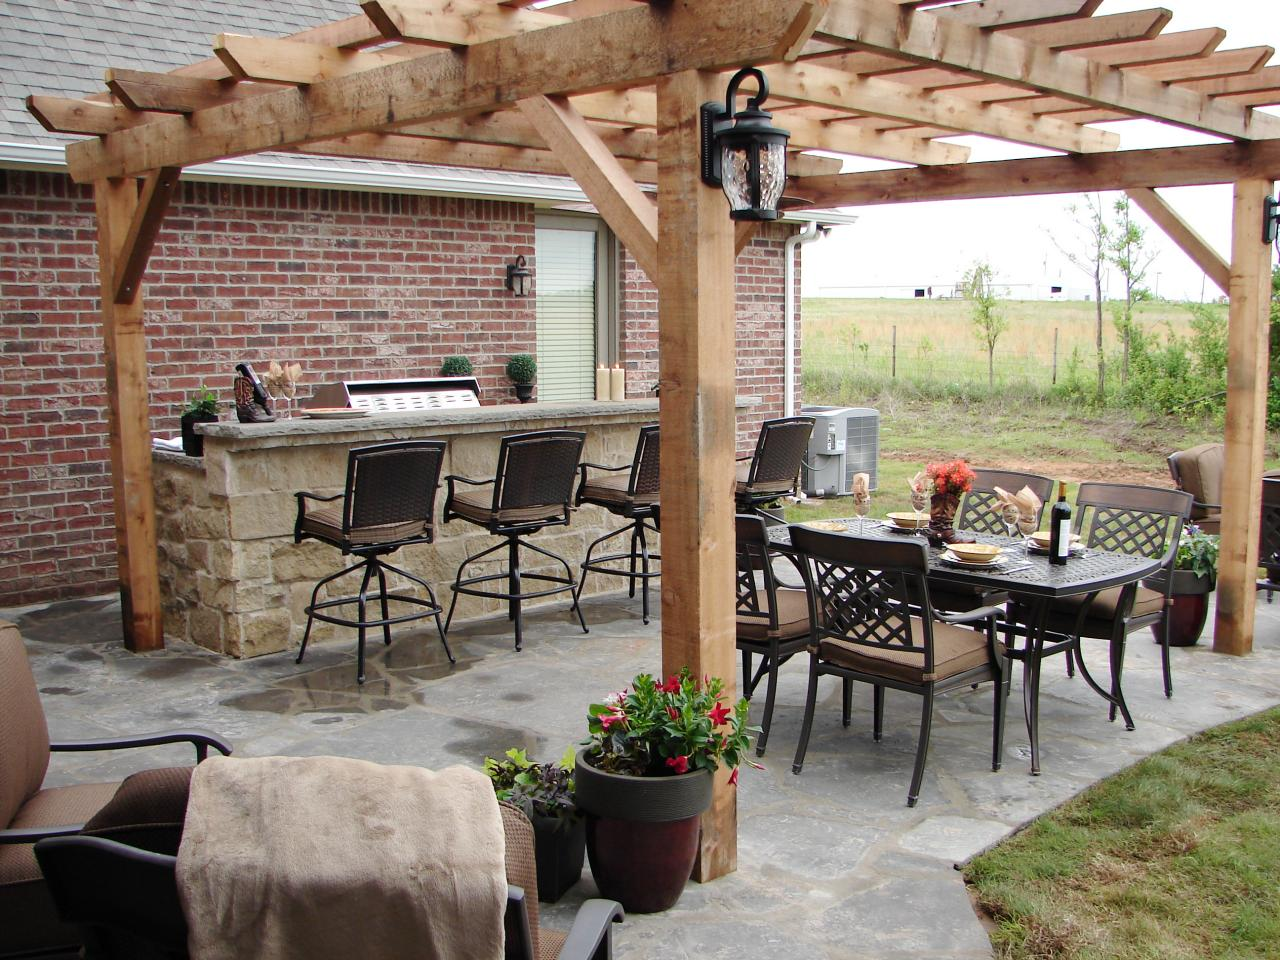 Outdoor Kitchen Bar Ideas: Pictures, Tips & Expert Advice | HGTV